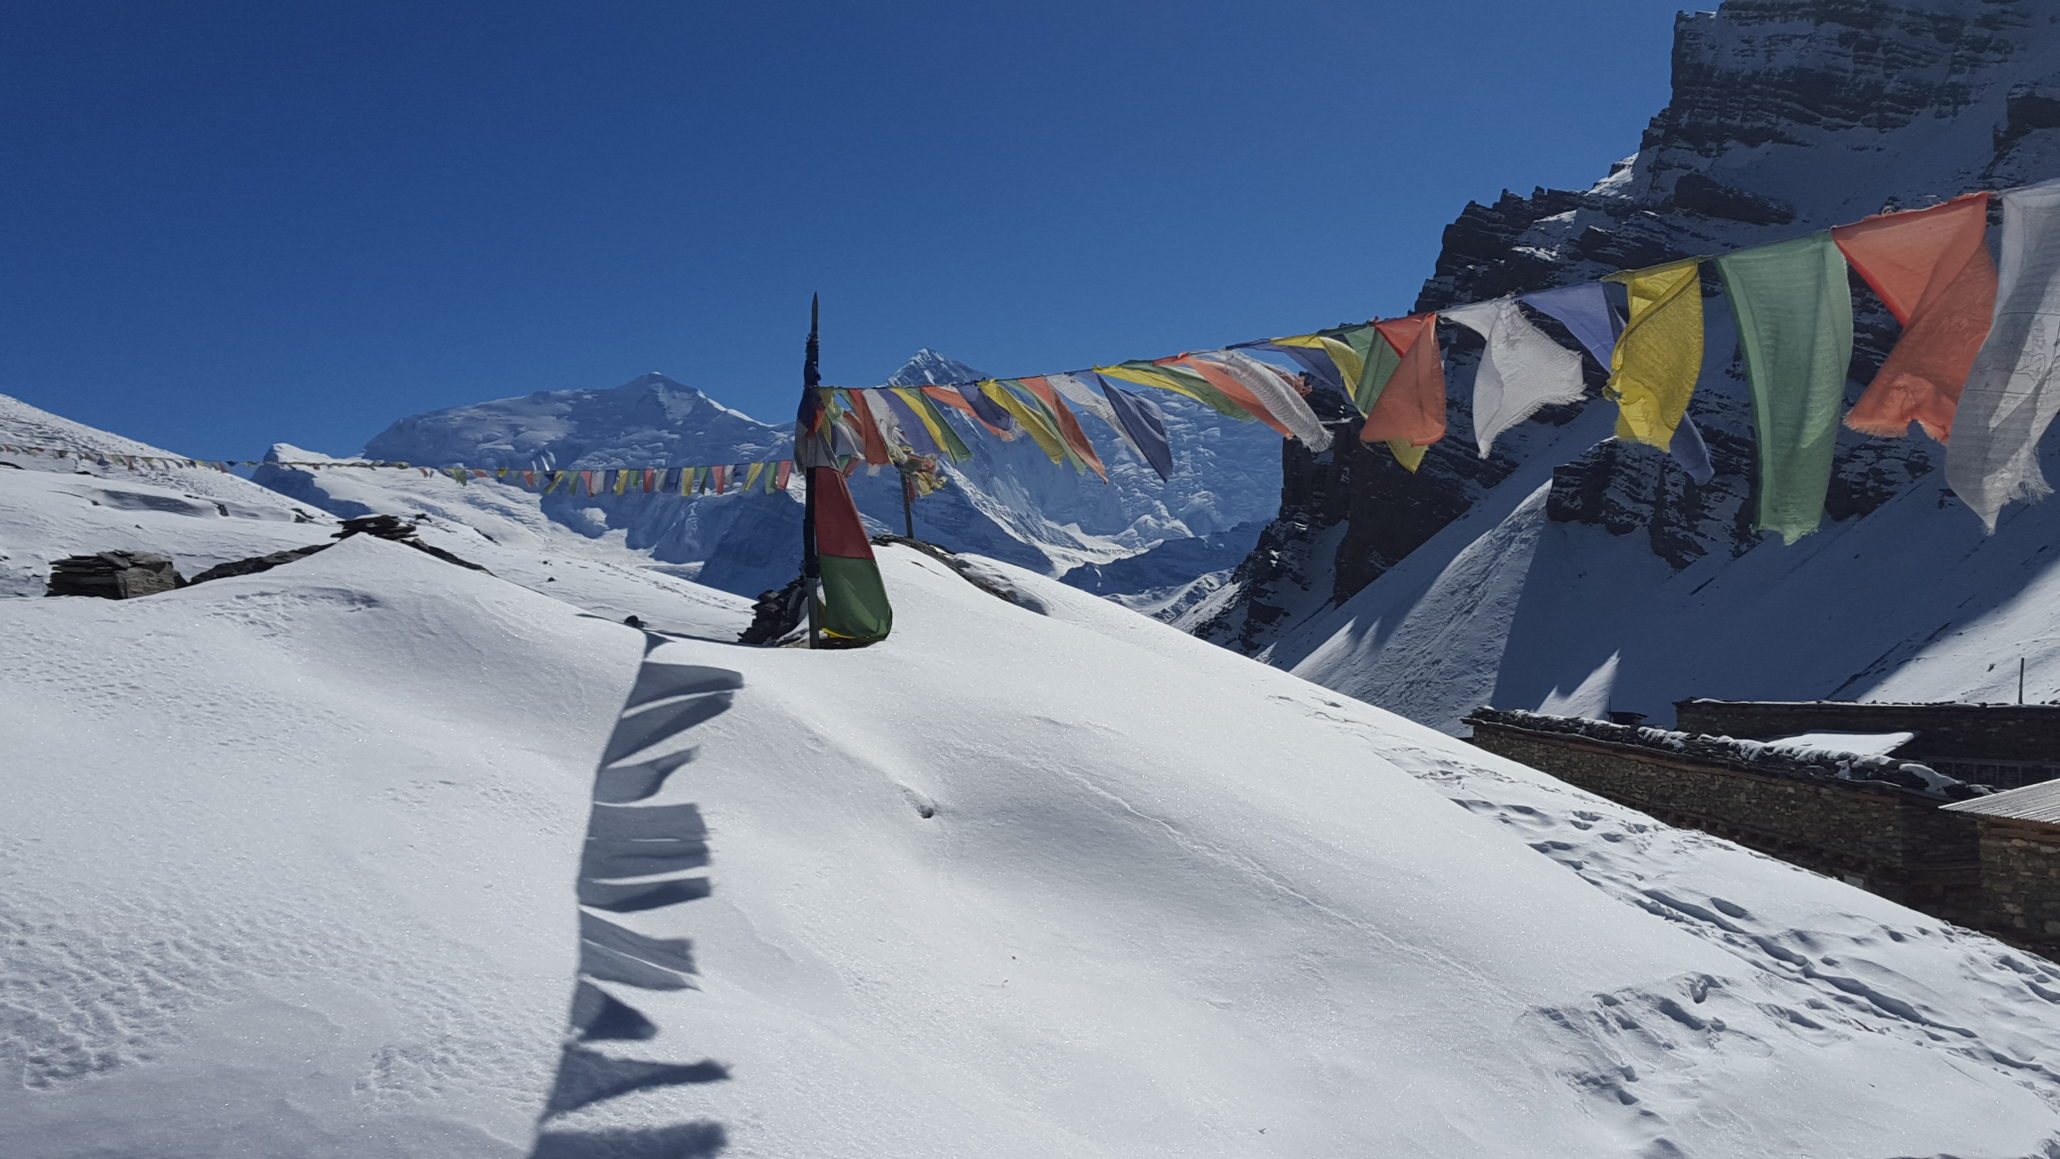 snow covered mountains with colorful prayer flags on a pole